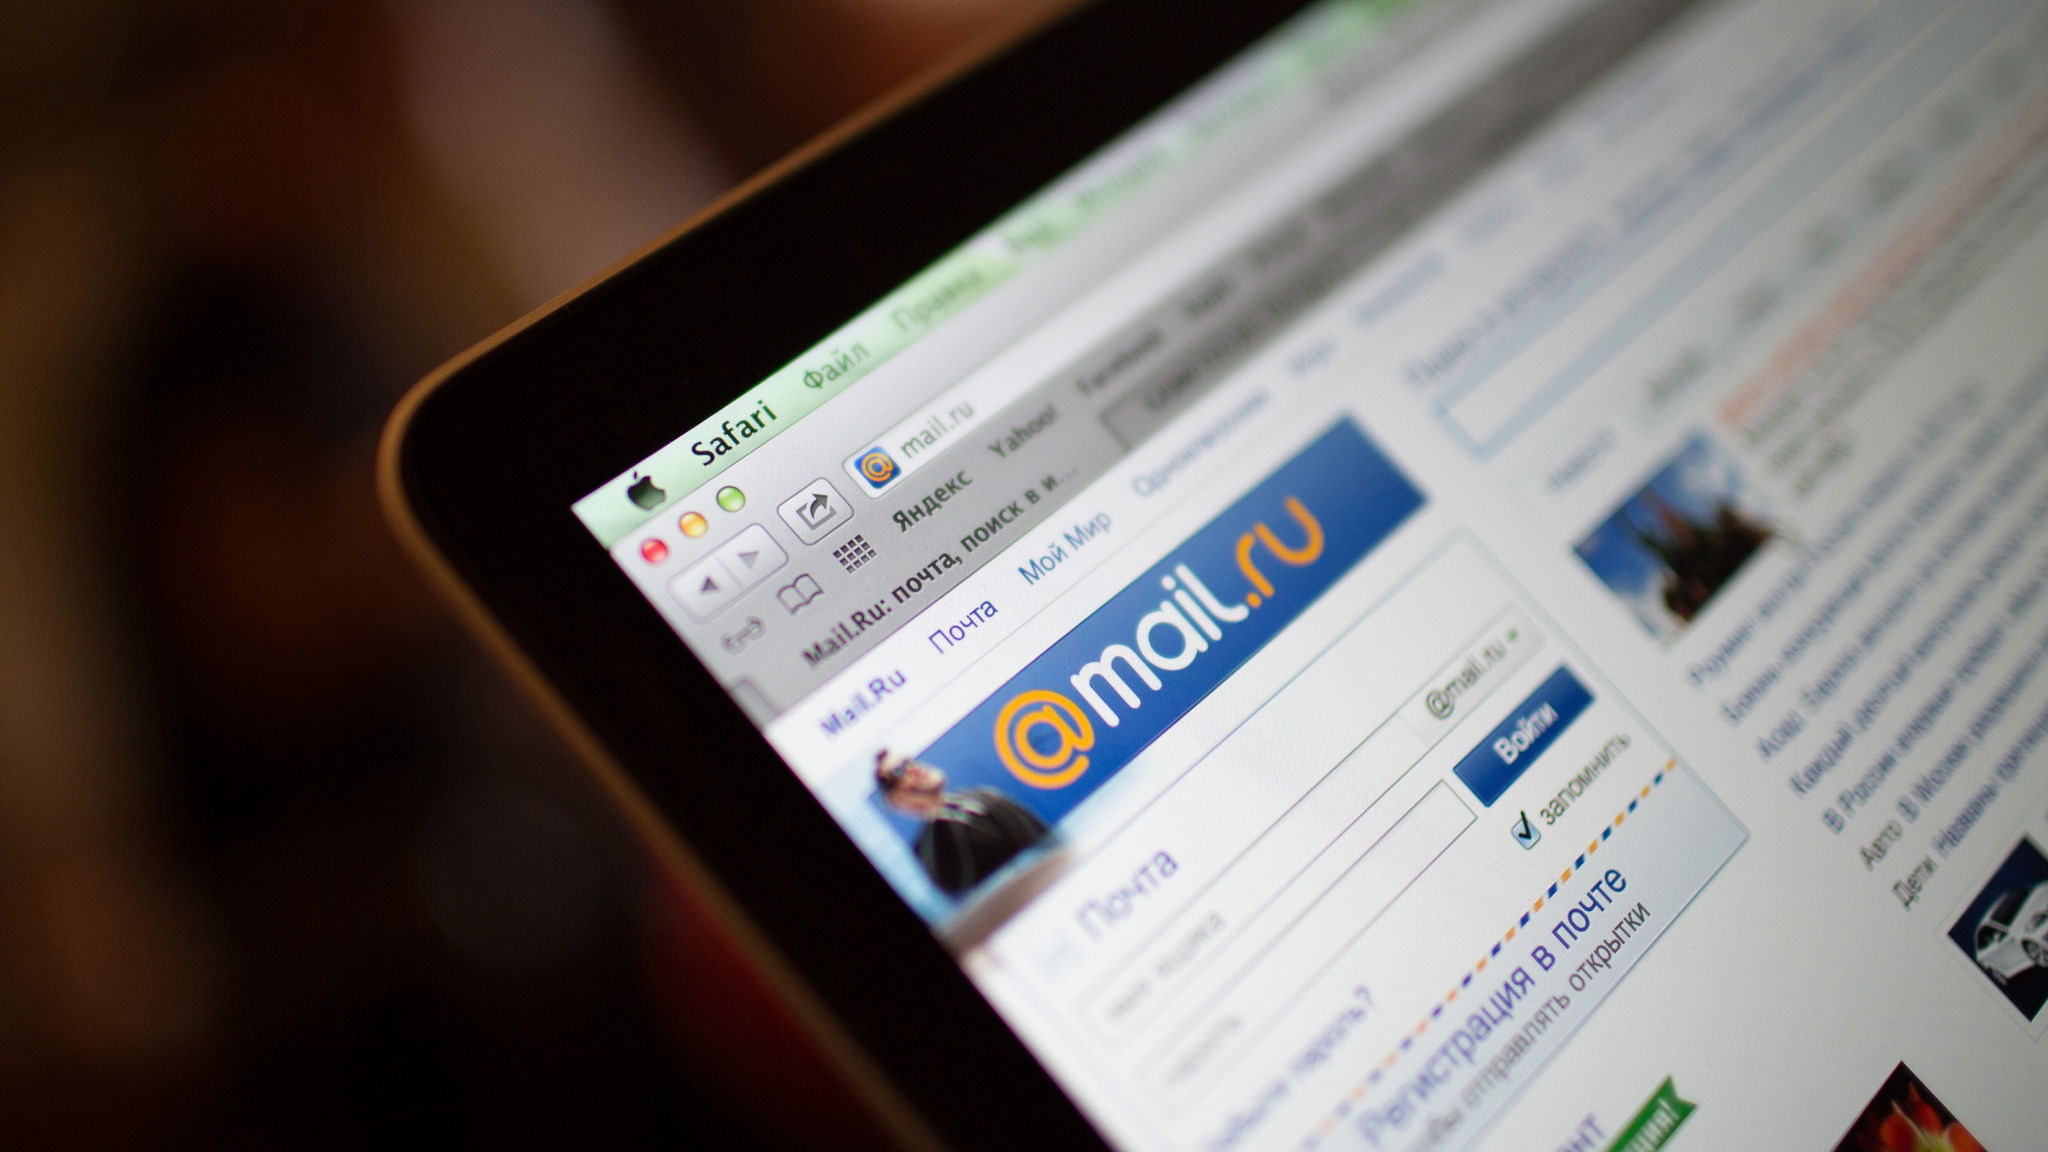 Russia's Sberbank and Mail ru to launch digital joint venture